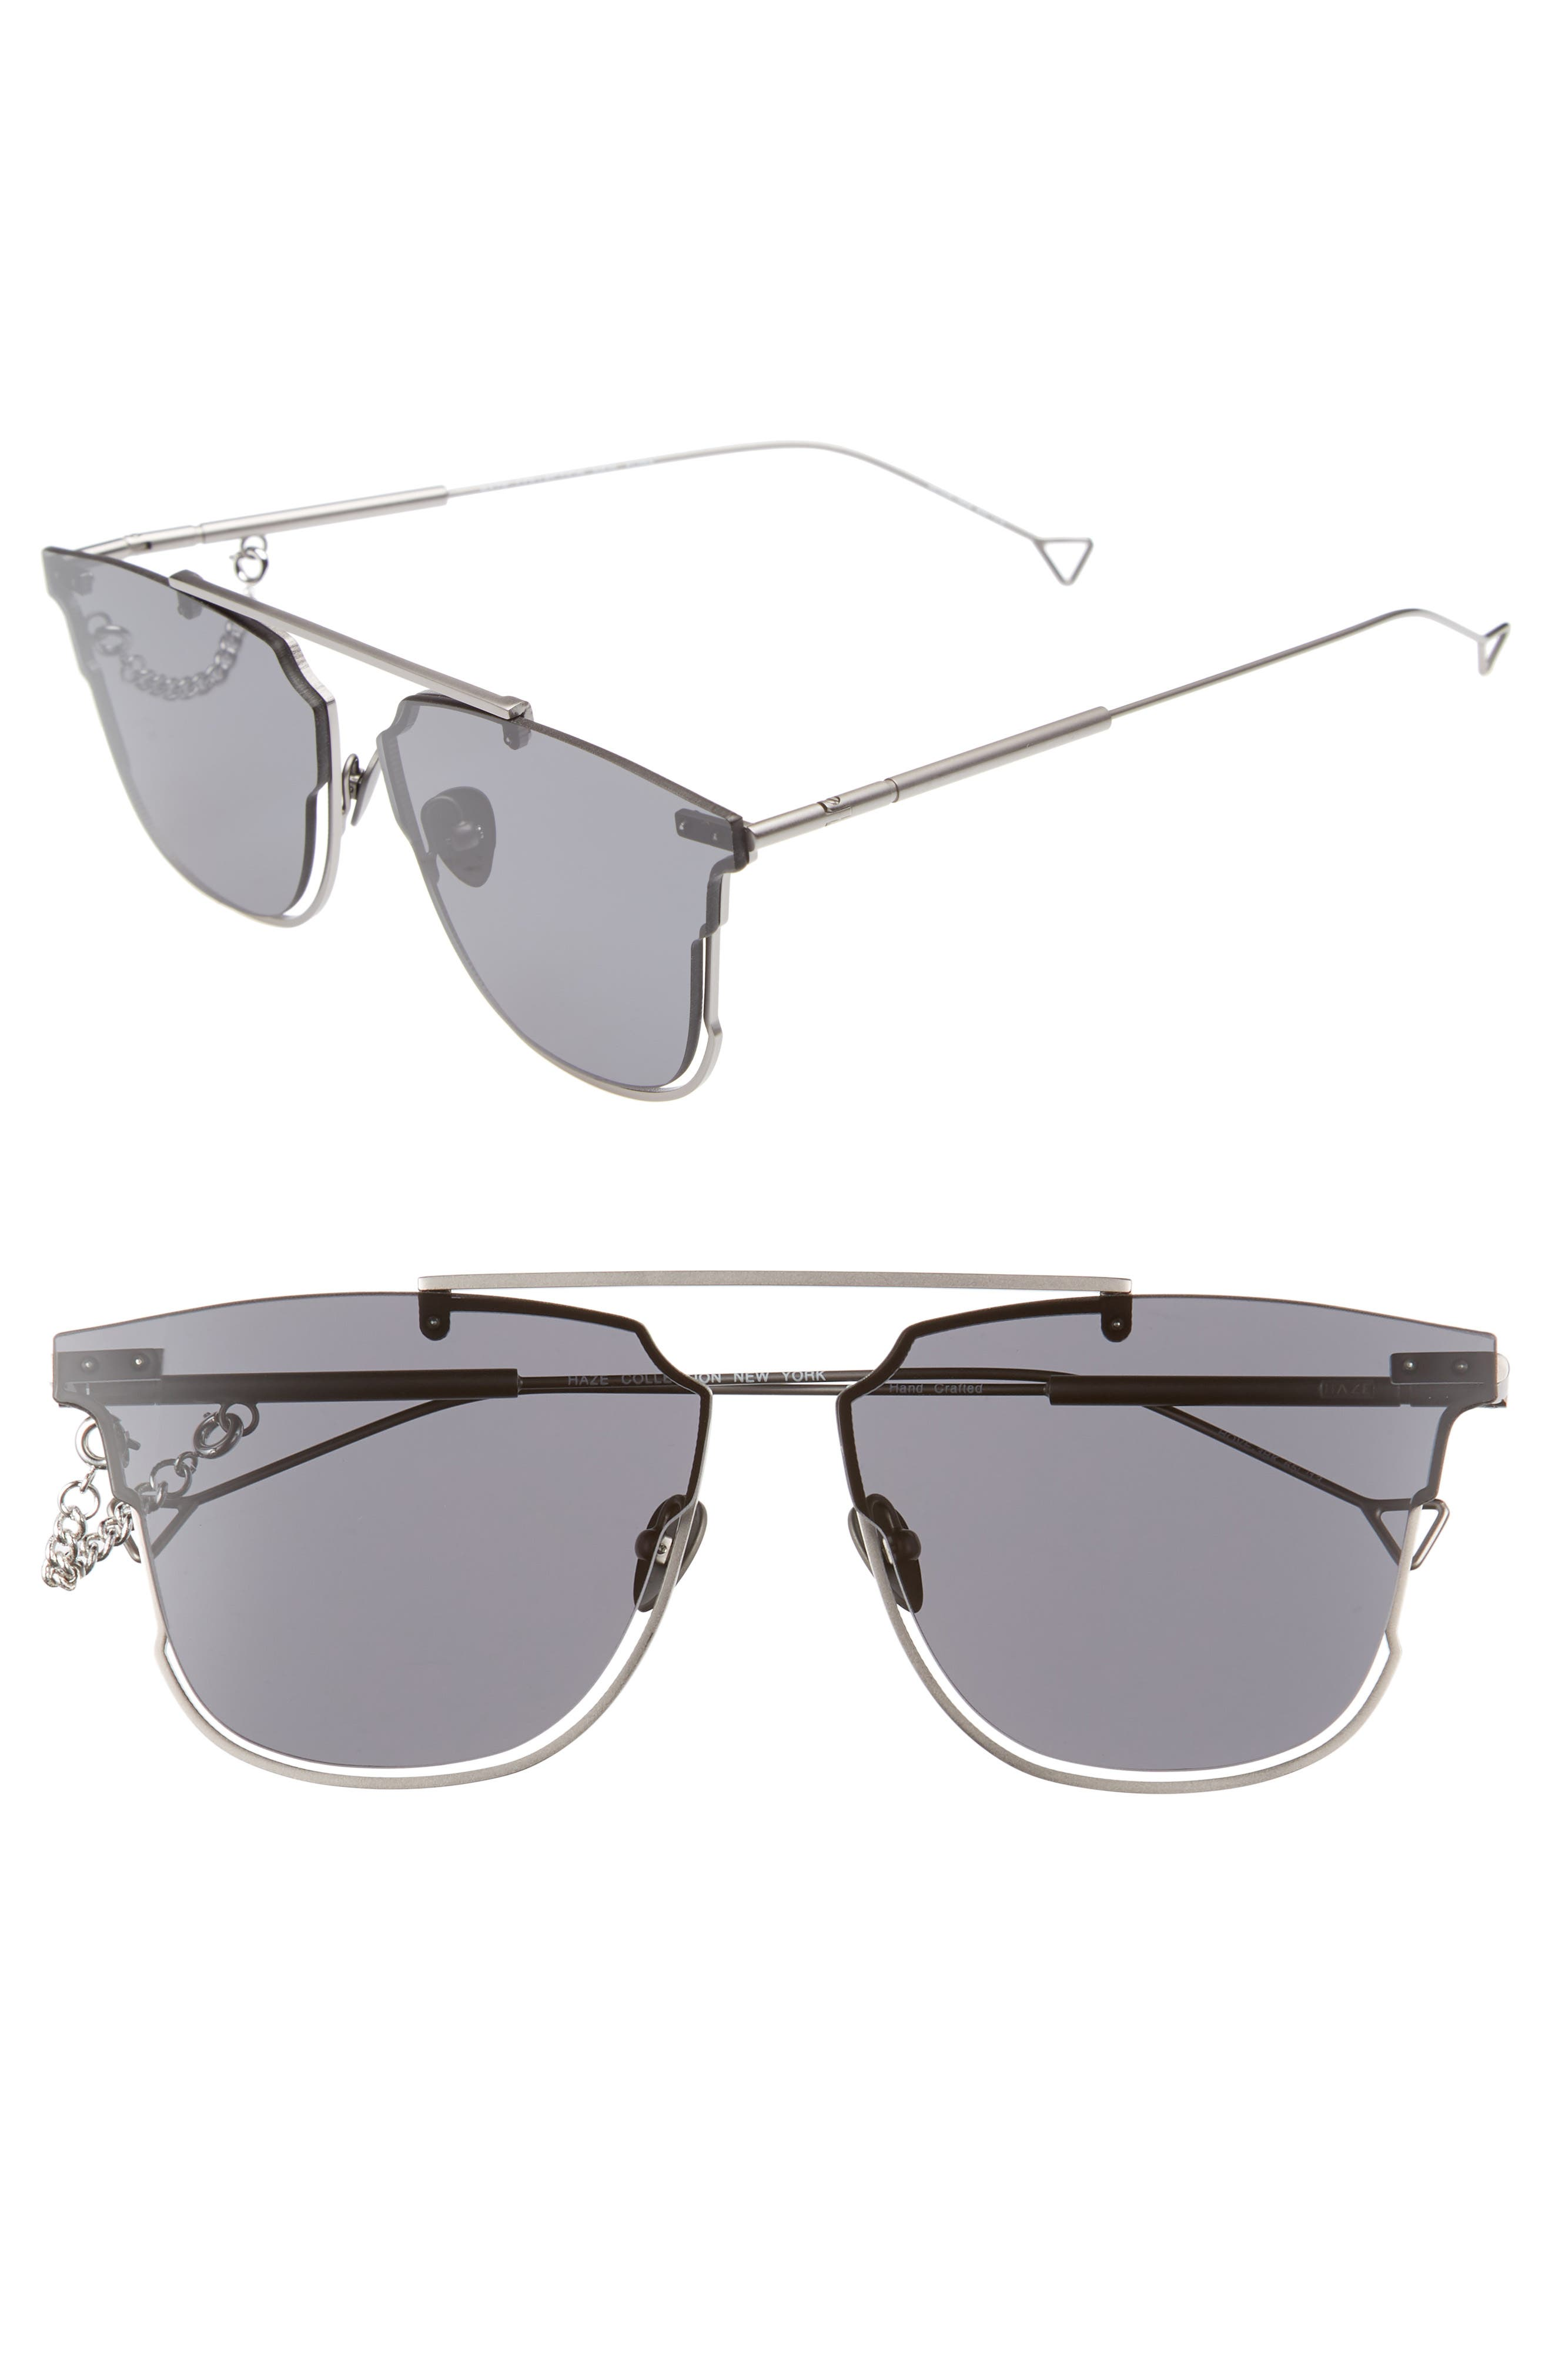 Hove 65mm Sunglasses,                         Main,                         color, Smoke